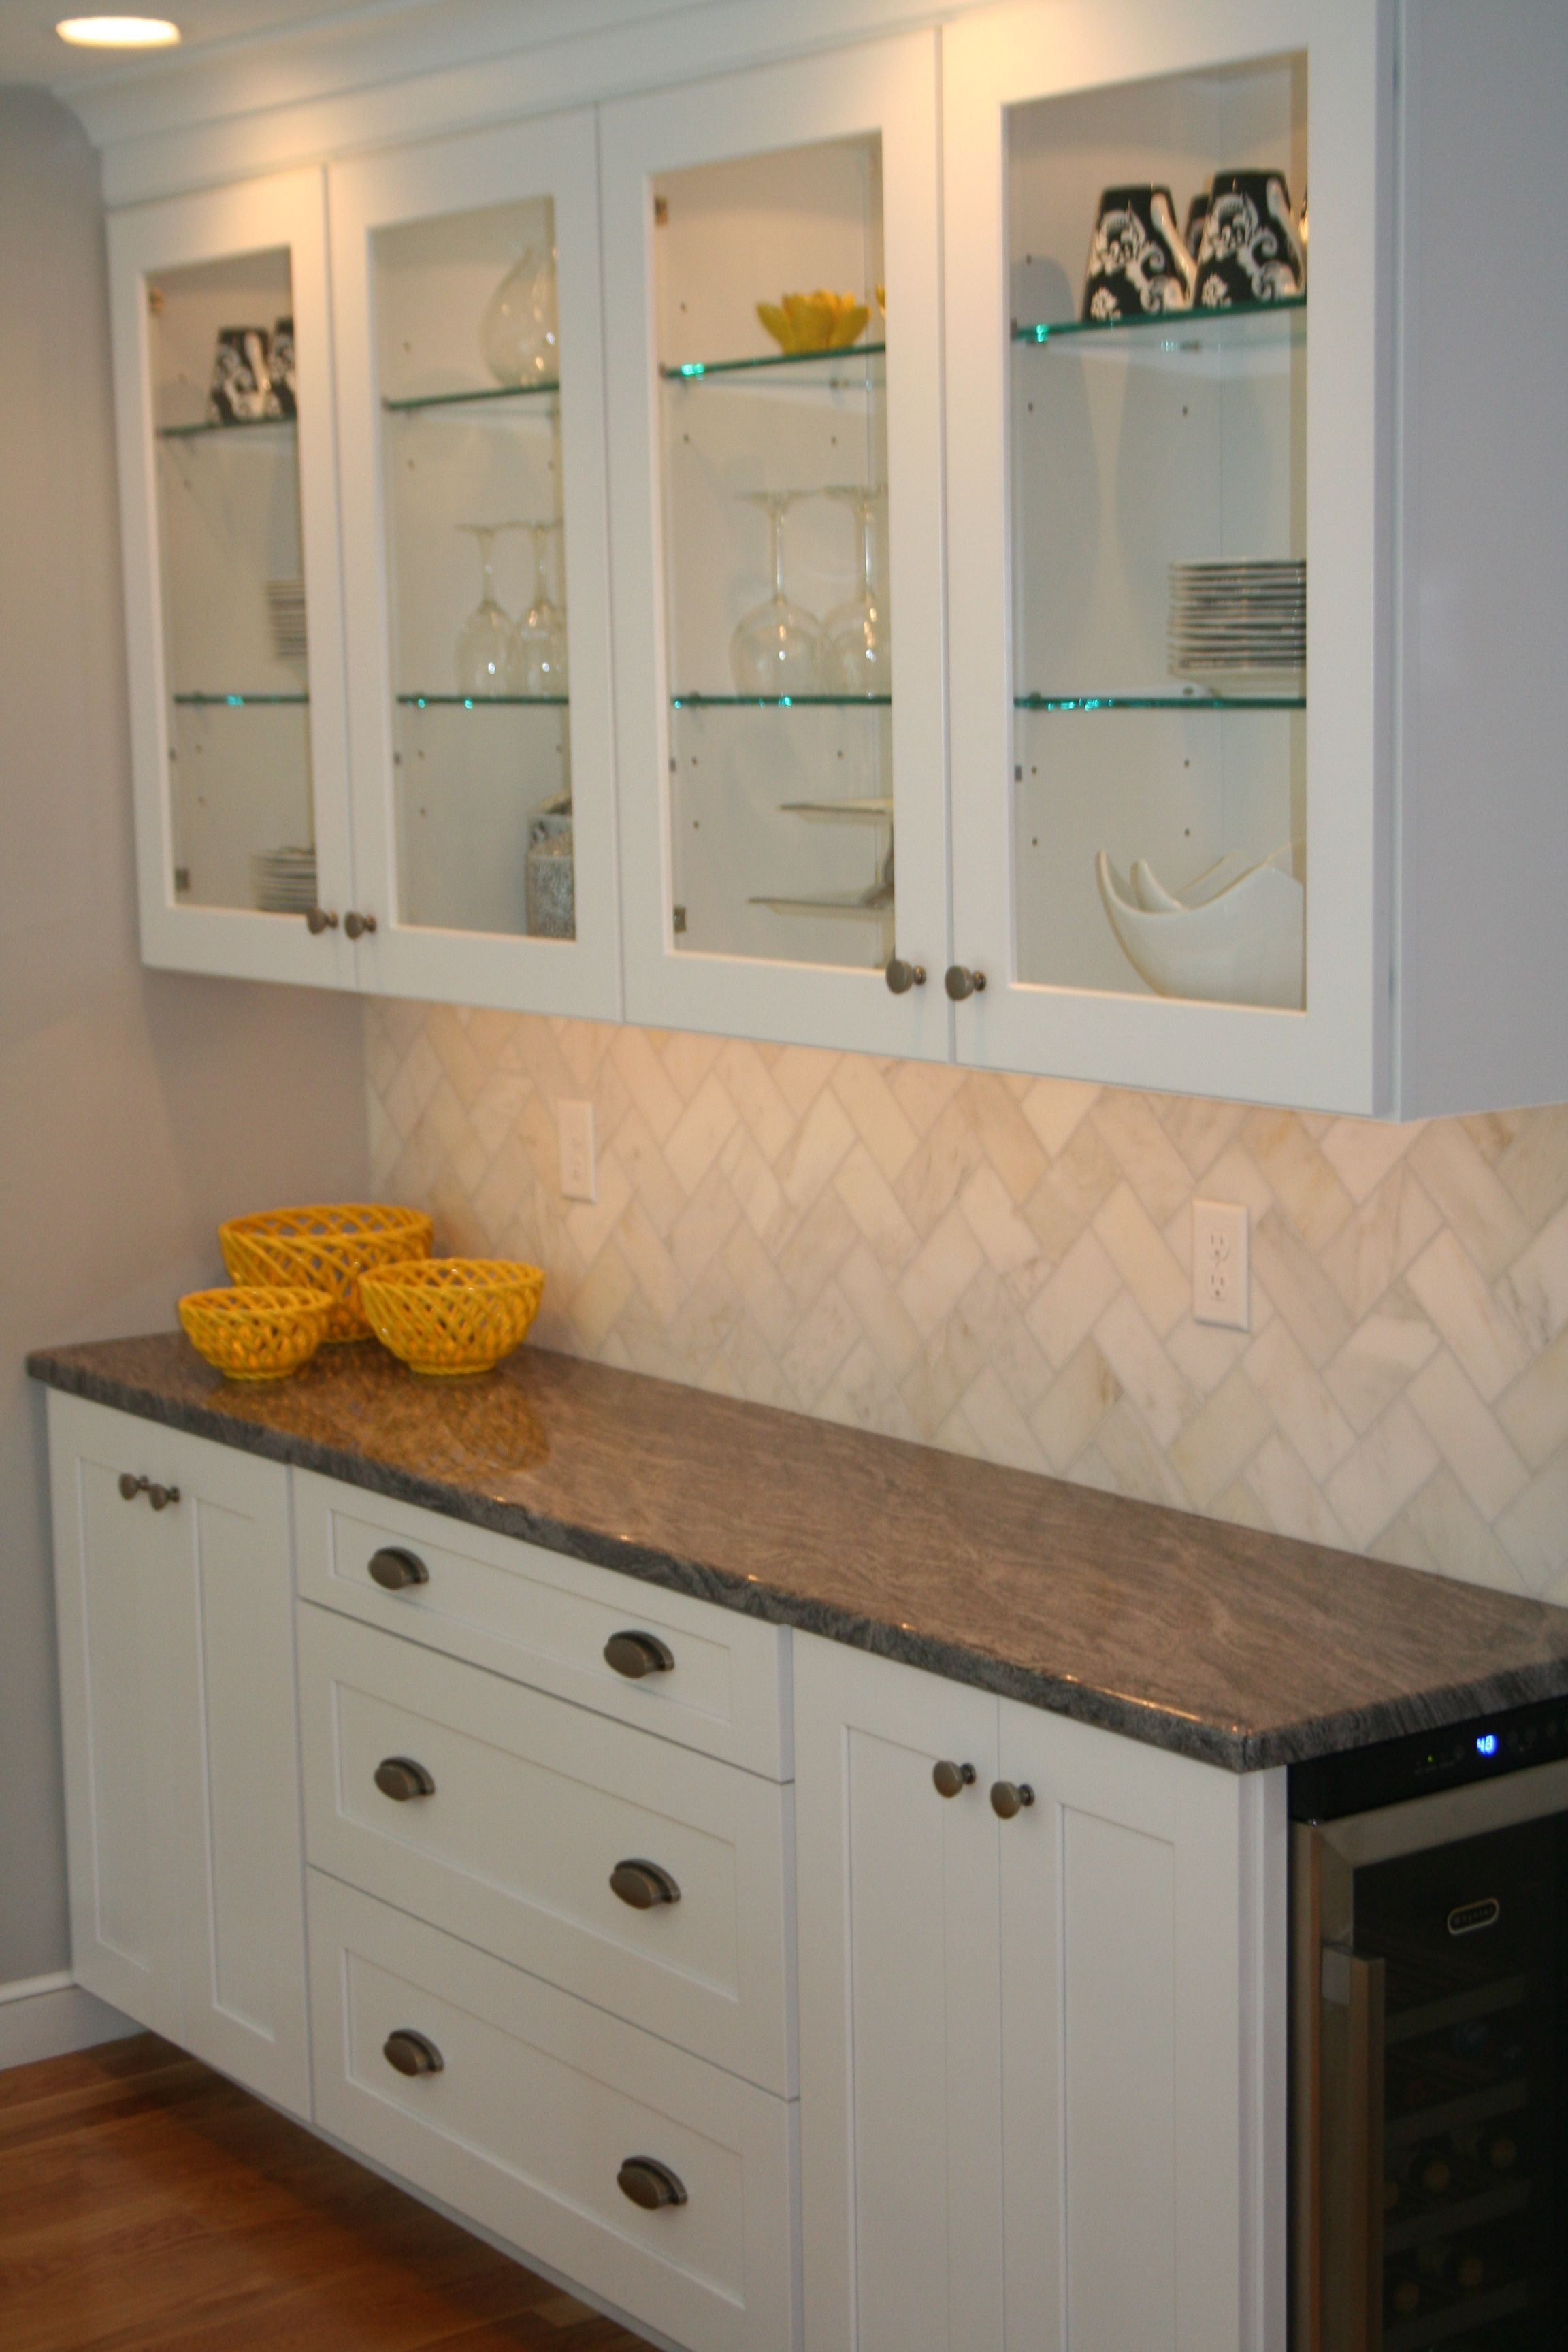 Delightful Fisher Cabinets #29 - White Kitchen Cabinet, Buffet Cabinetry, Granite Countertop In King Fisher  Blue,Elkay Single